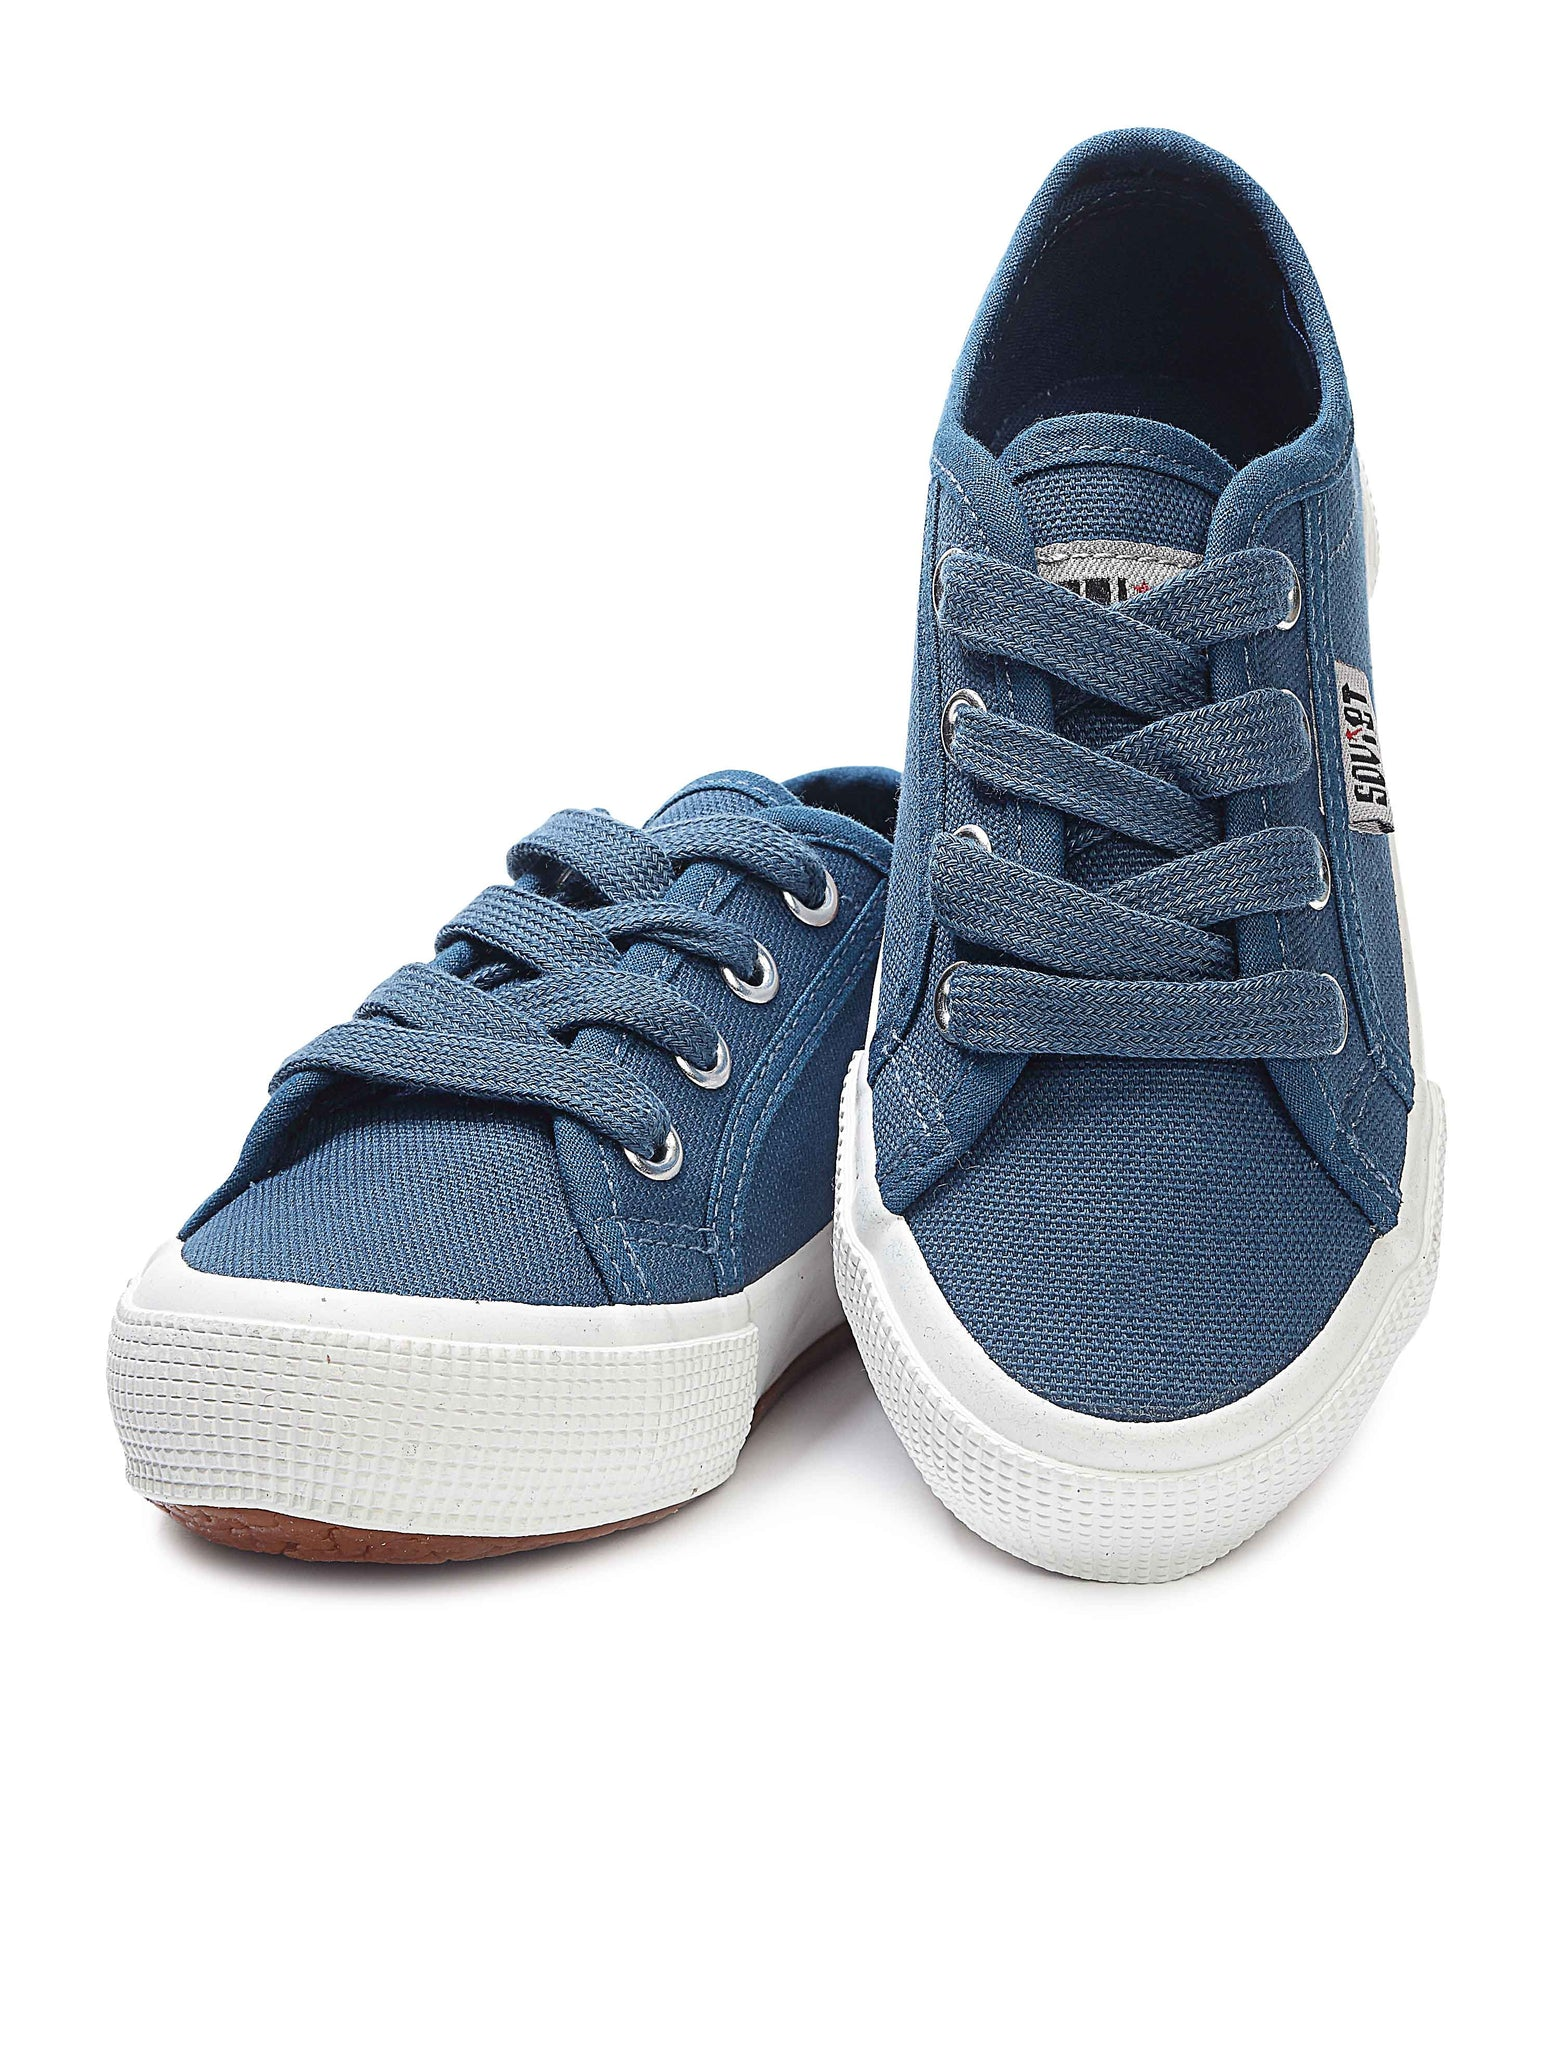 Kids Ayanda Sneakers - Blue